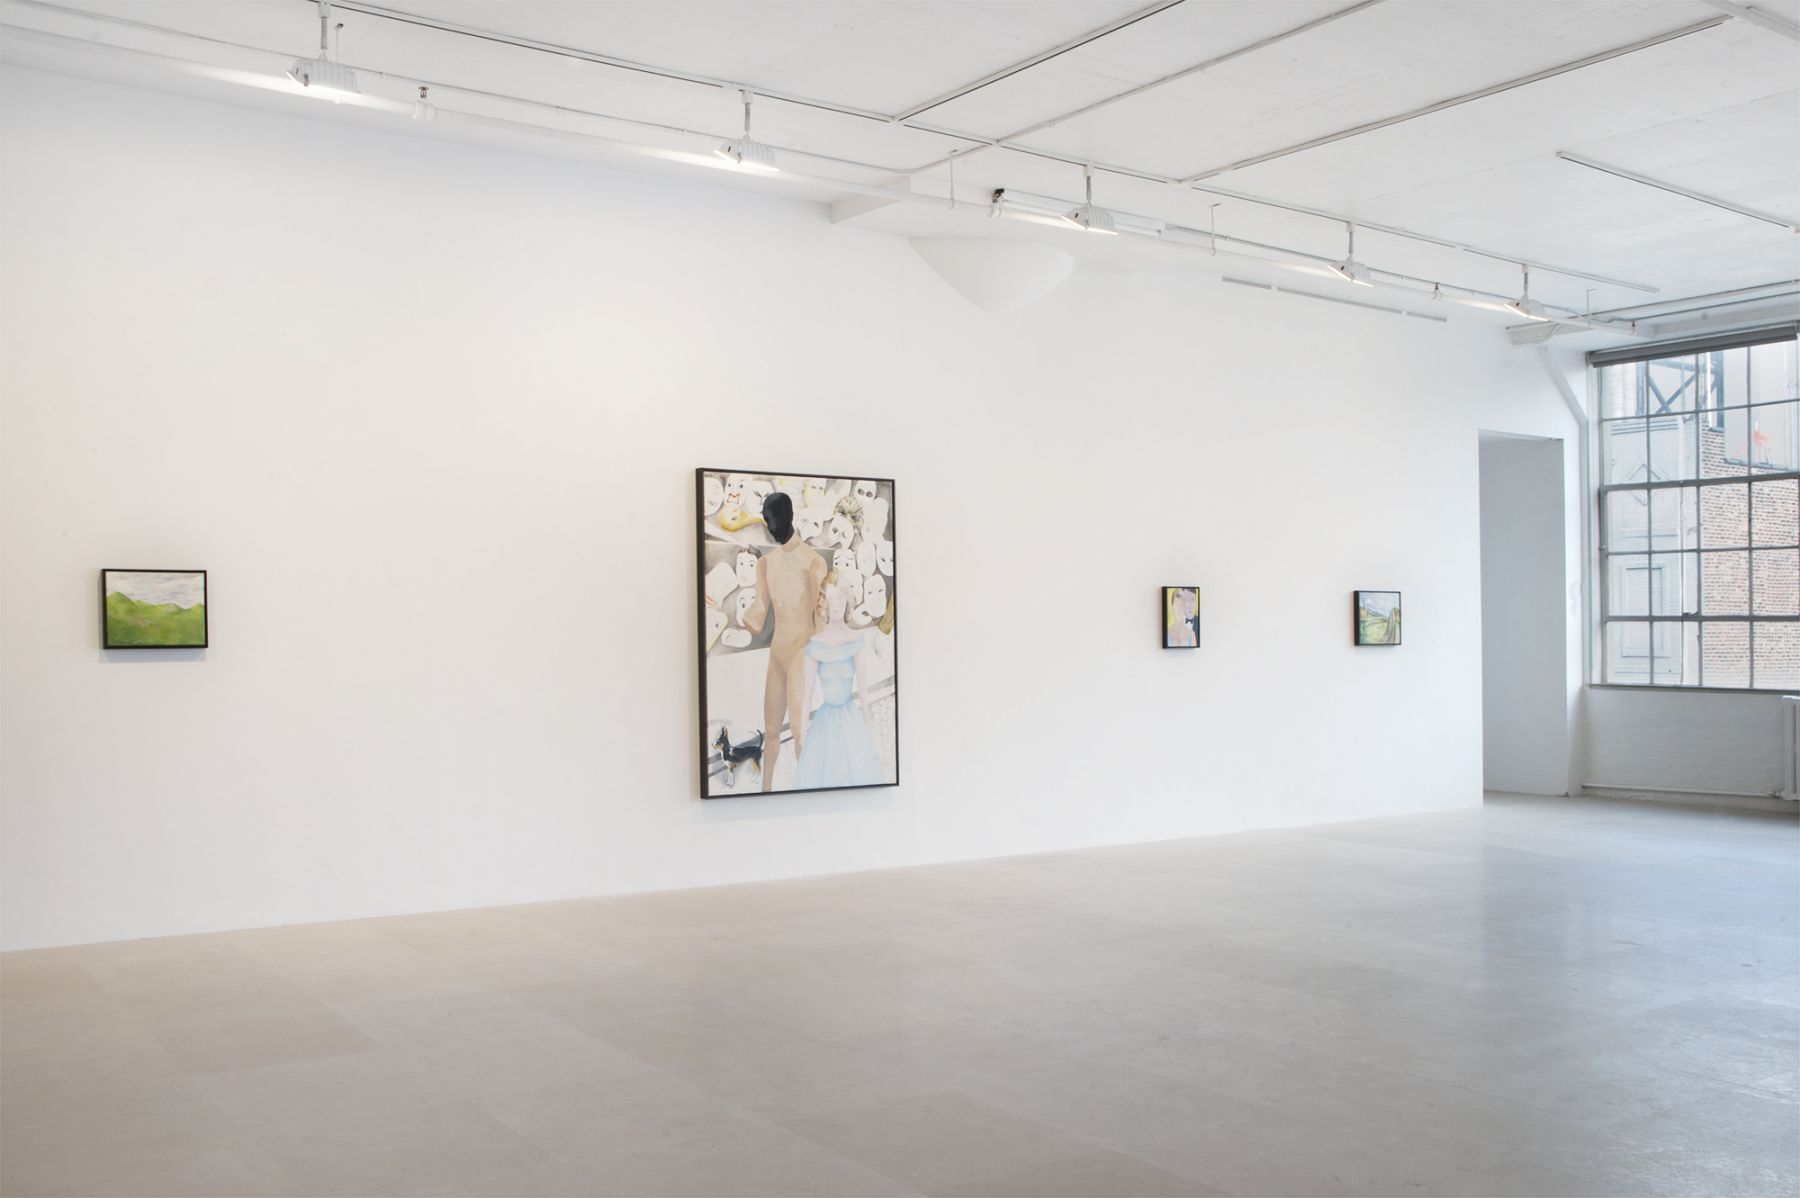 Installation view, ENTERTAINMENT, Greene Naftali, New York, 2011